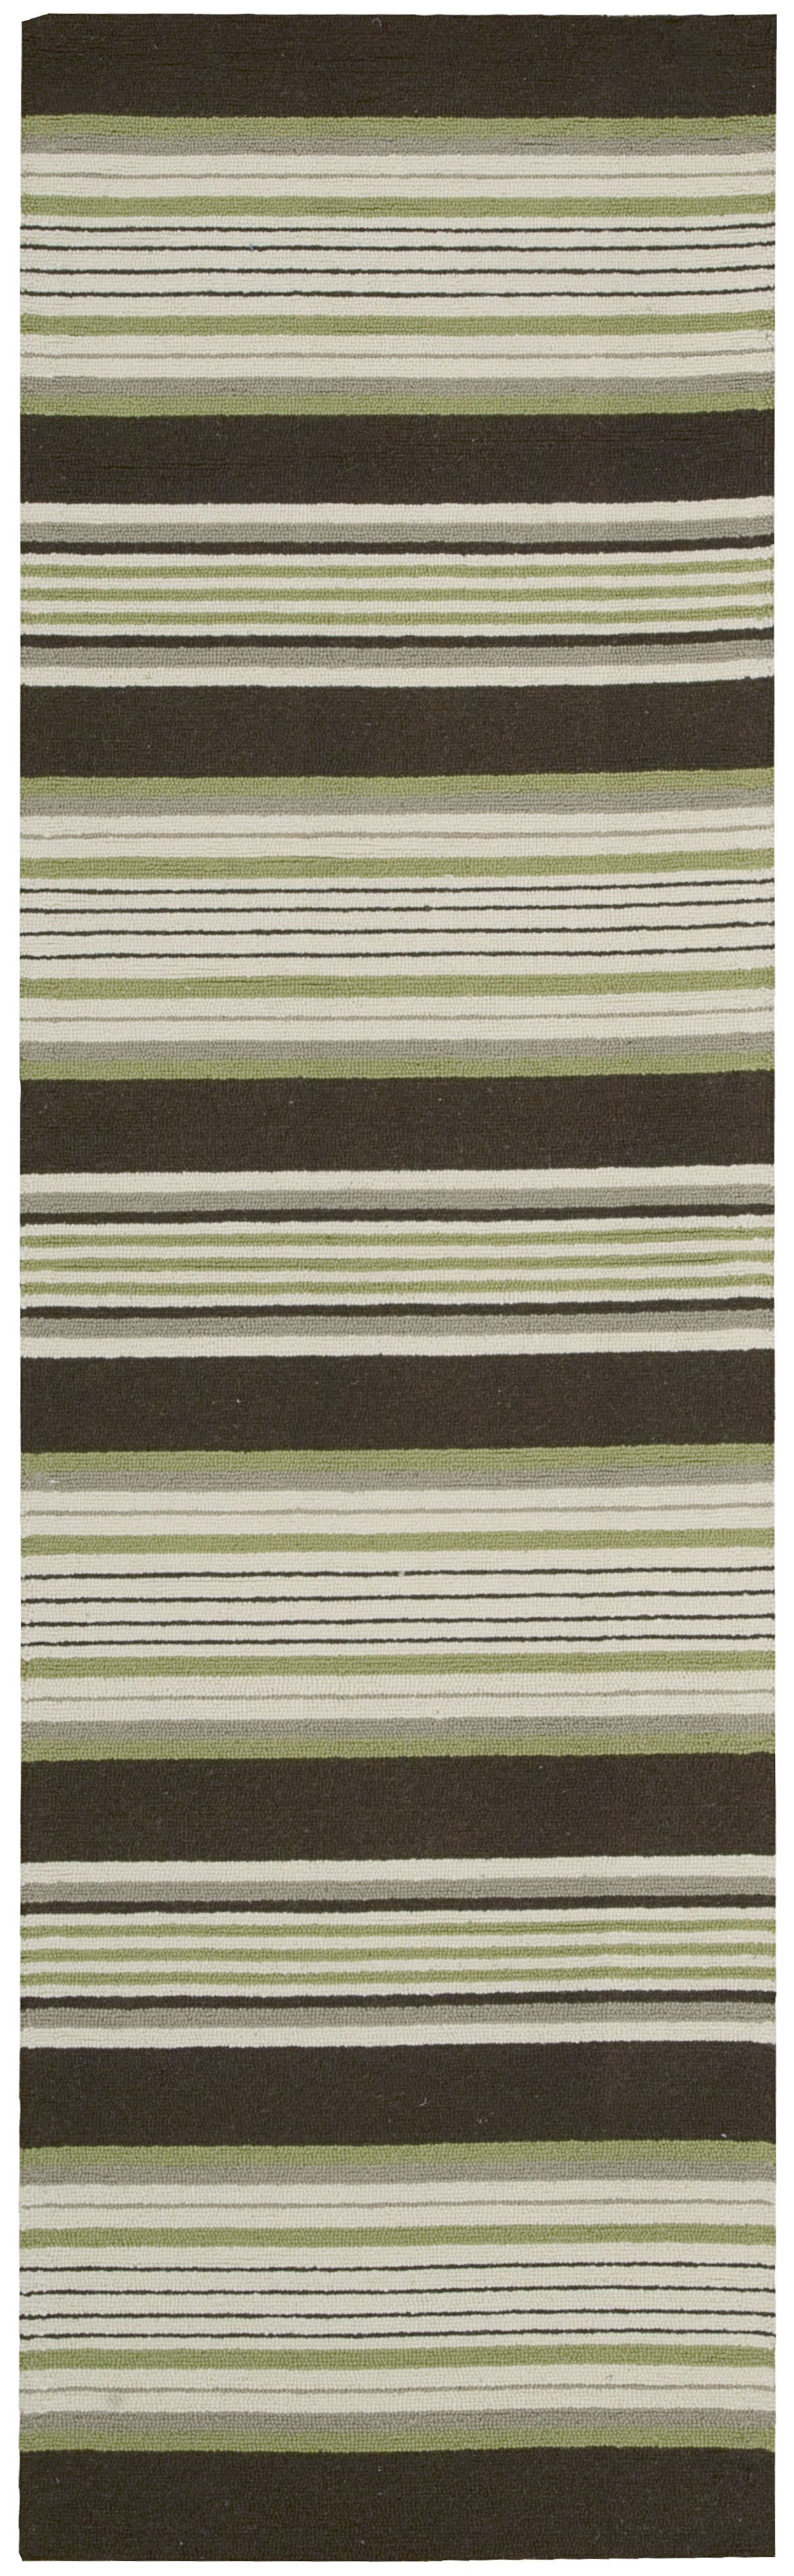 Biddeford Hand-Hooked Green Area Rug Rug Size: Rectangle 3'6